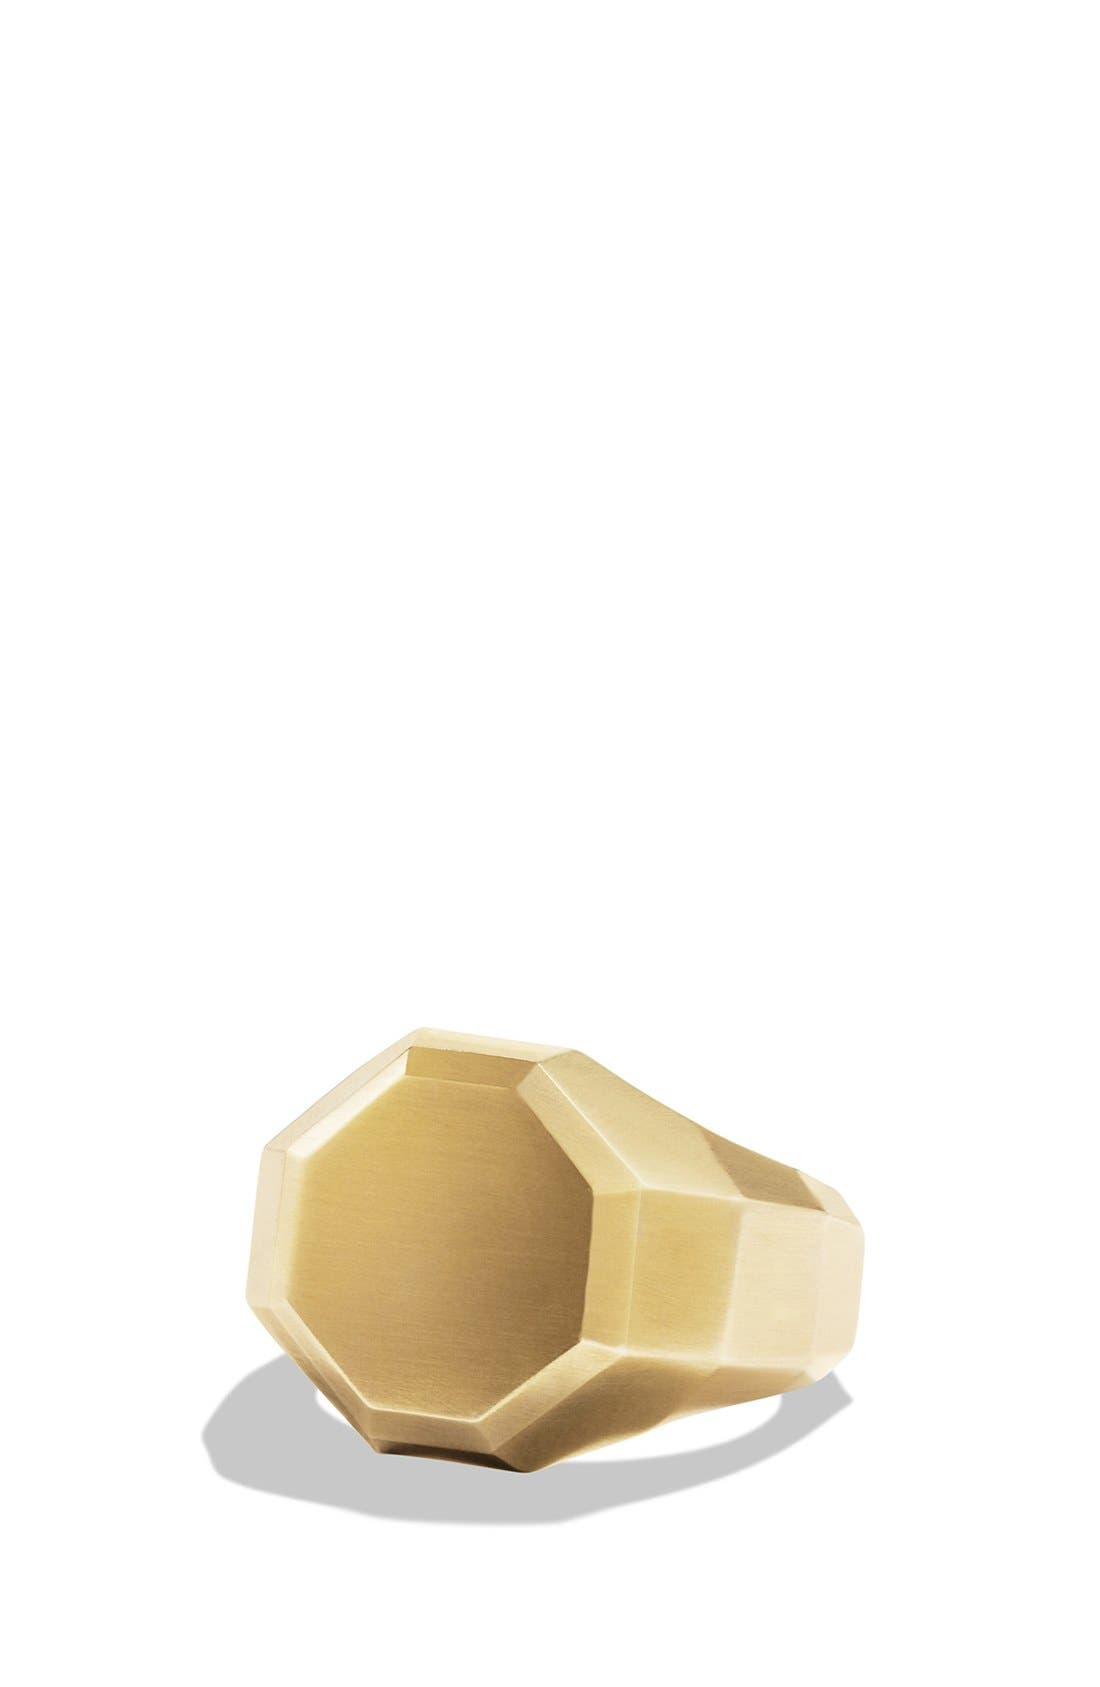 'Faceted' Signet Ring with 18k Gold,                         Main,                         color,